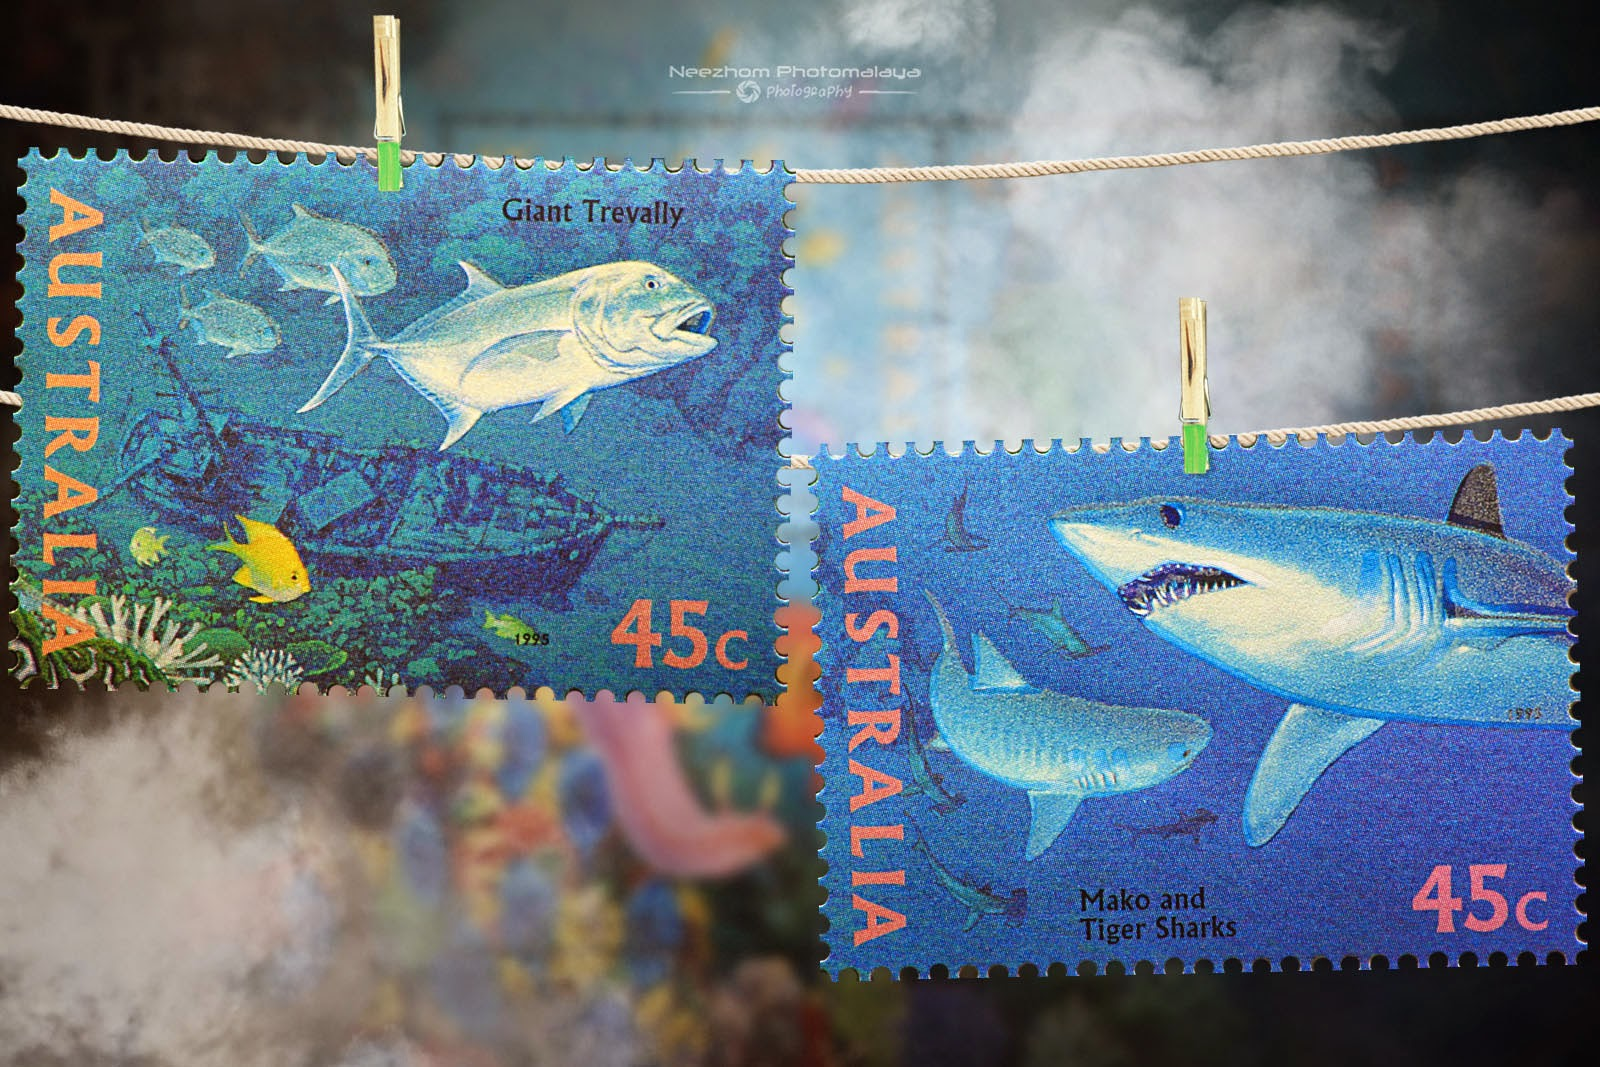 Australia 1995 The World Down Under stamps - Giant trevally, Mako and Tiger shark